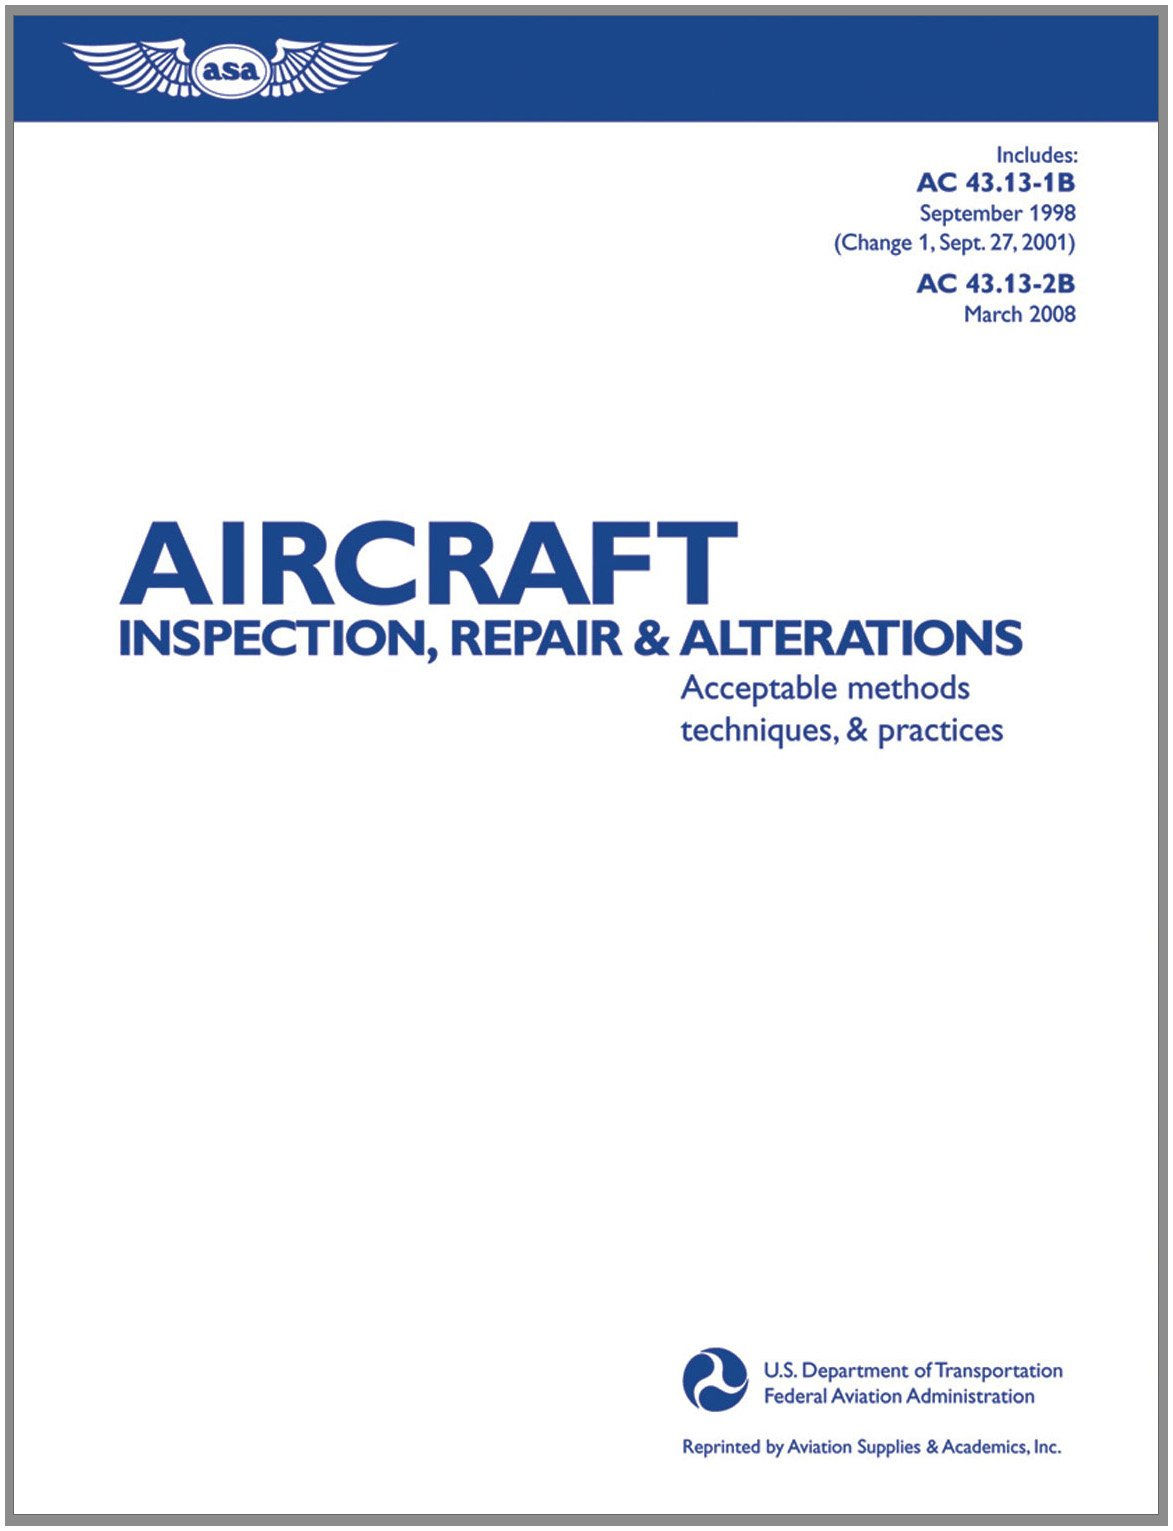 Aircraft Inspection, Repair & Alterations: AC 43.13-1B